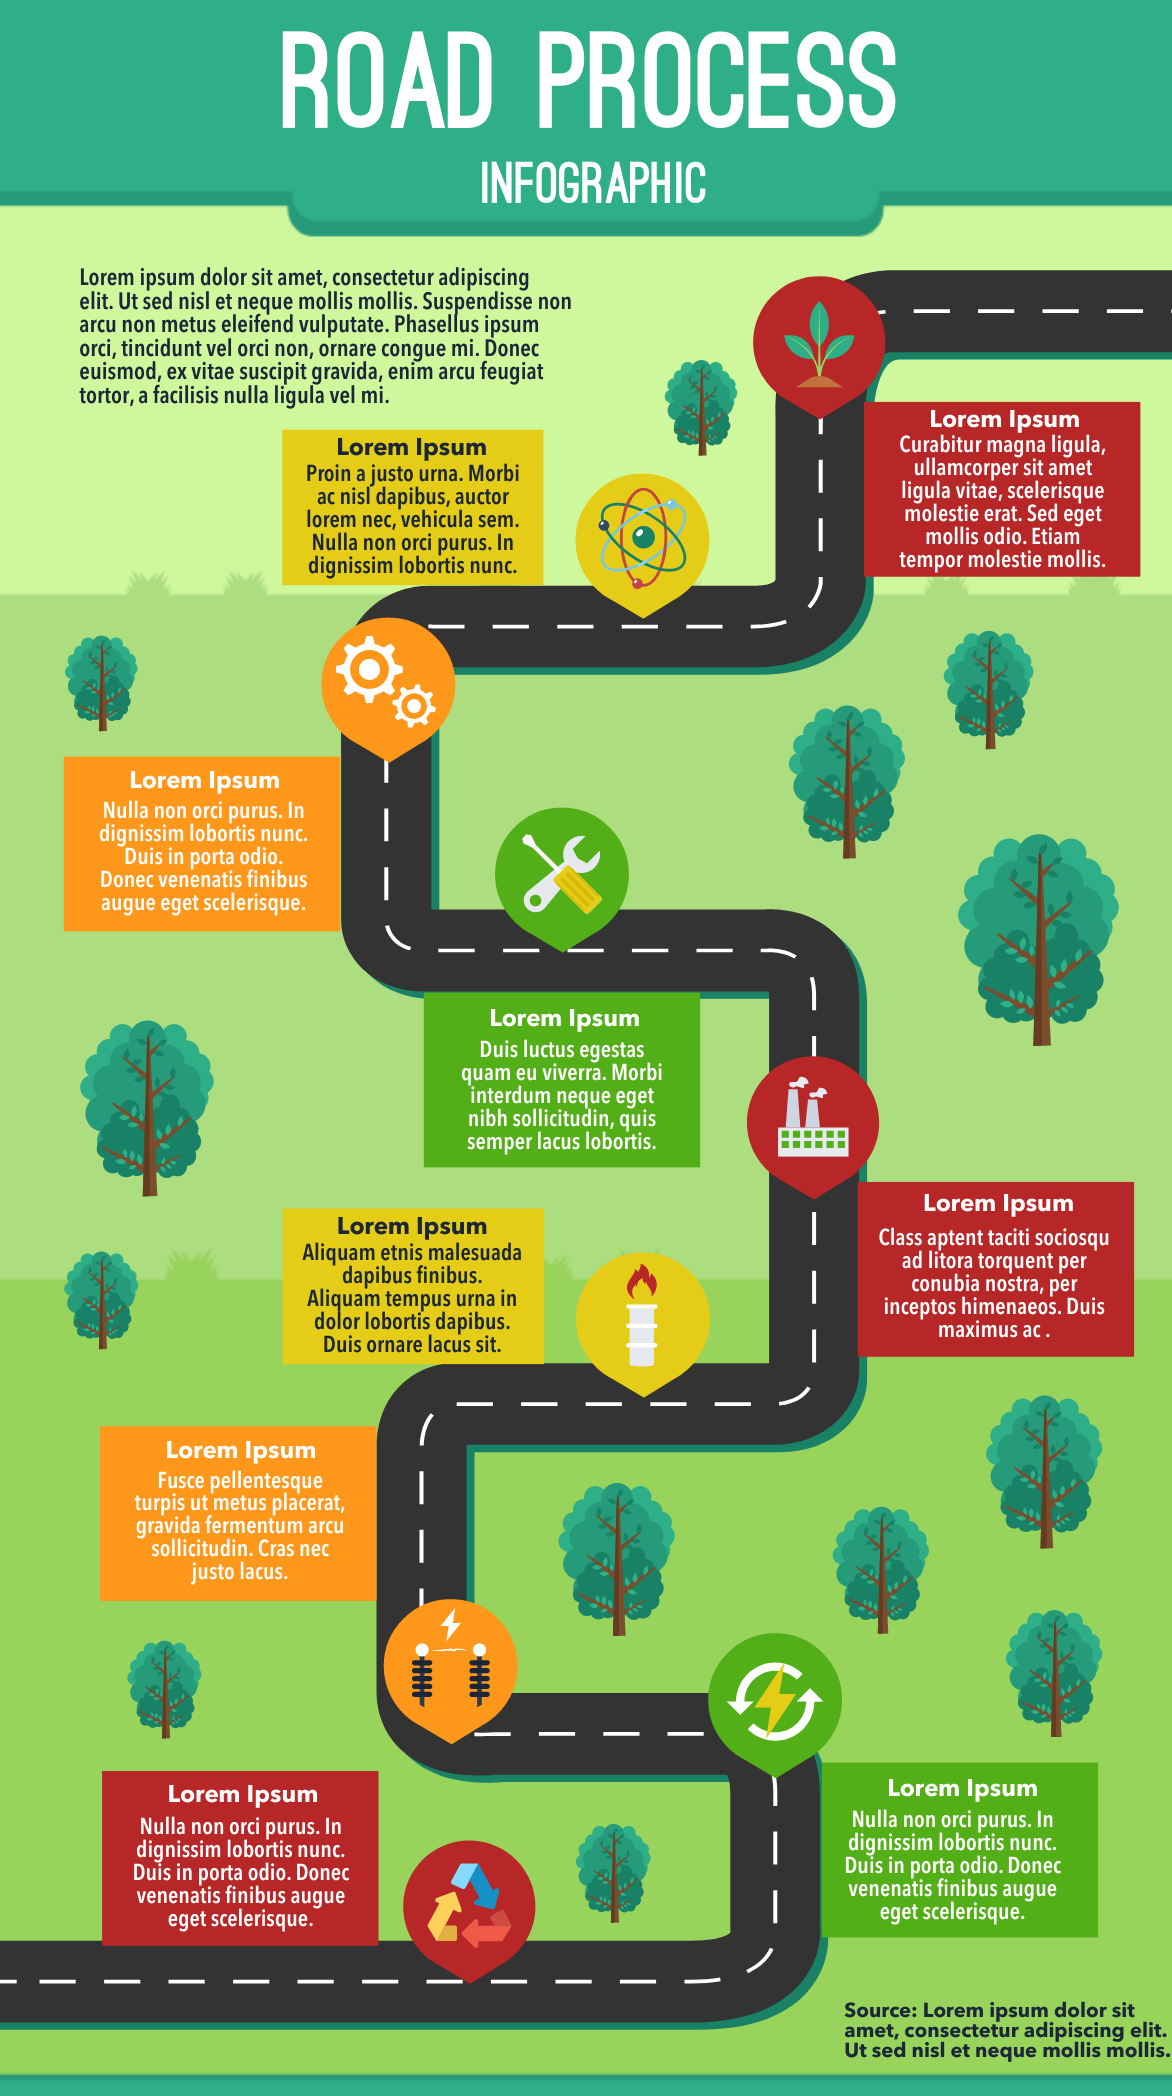 Road process infographic template